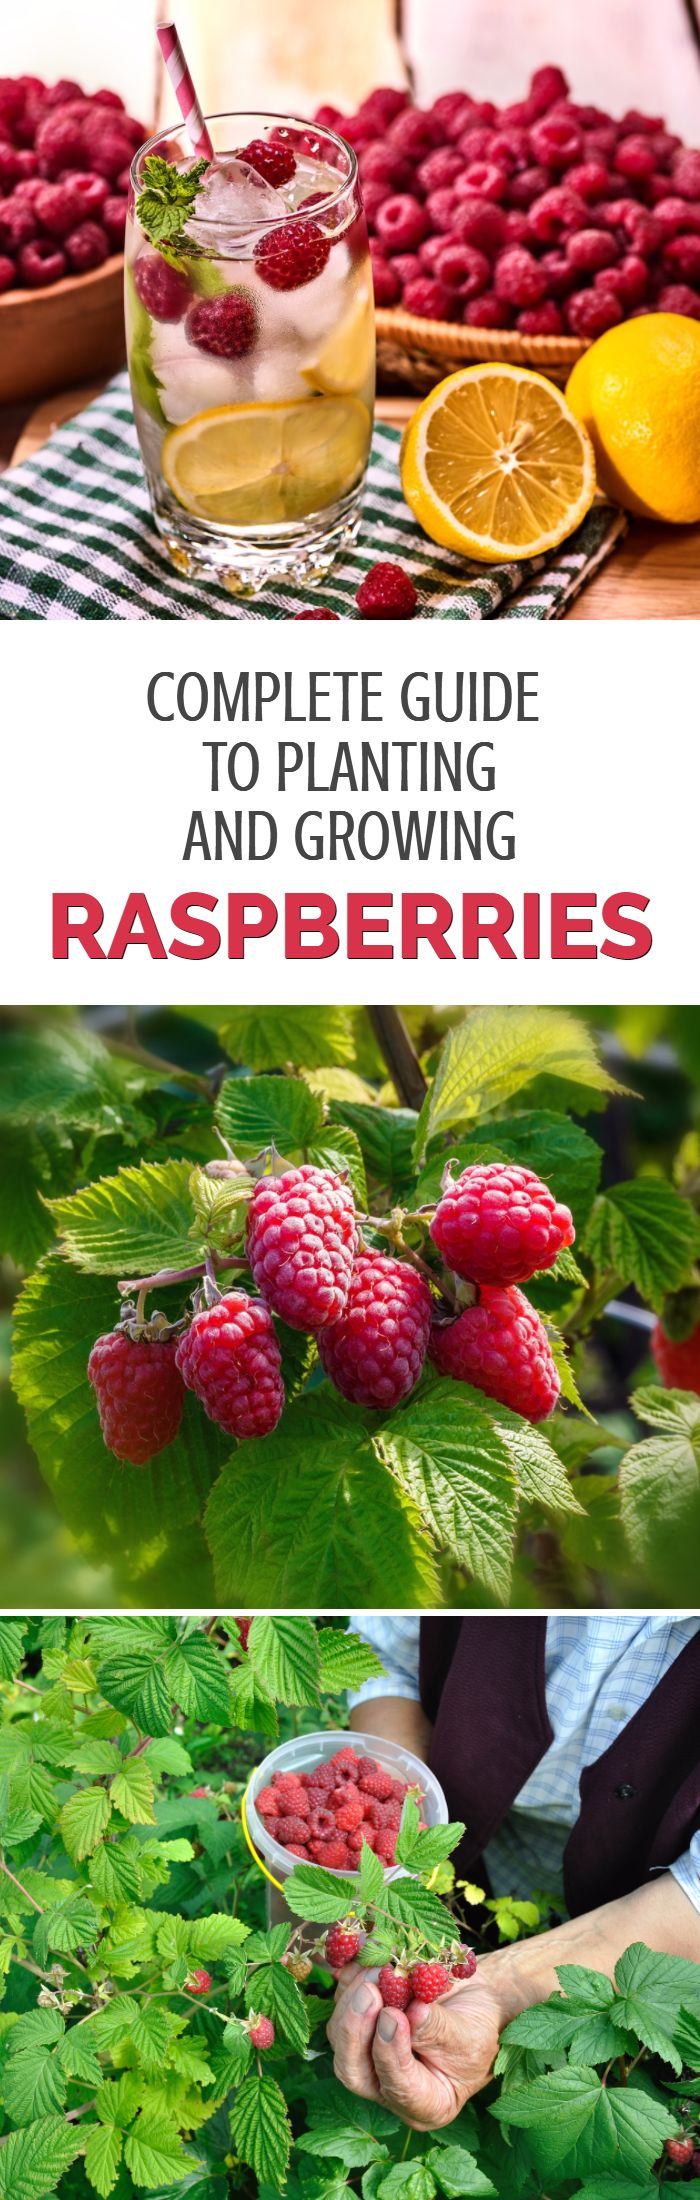 No garden is complete without a few raspberry plants to provide juicy fruits each summer. This growing guide explains how to grow raspberries, including a discussion on the different types of raspberries and grow to prune raspberry bushes to get the most fruit possible.